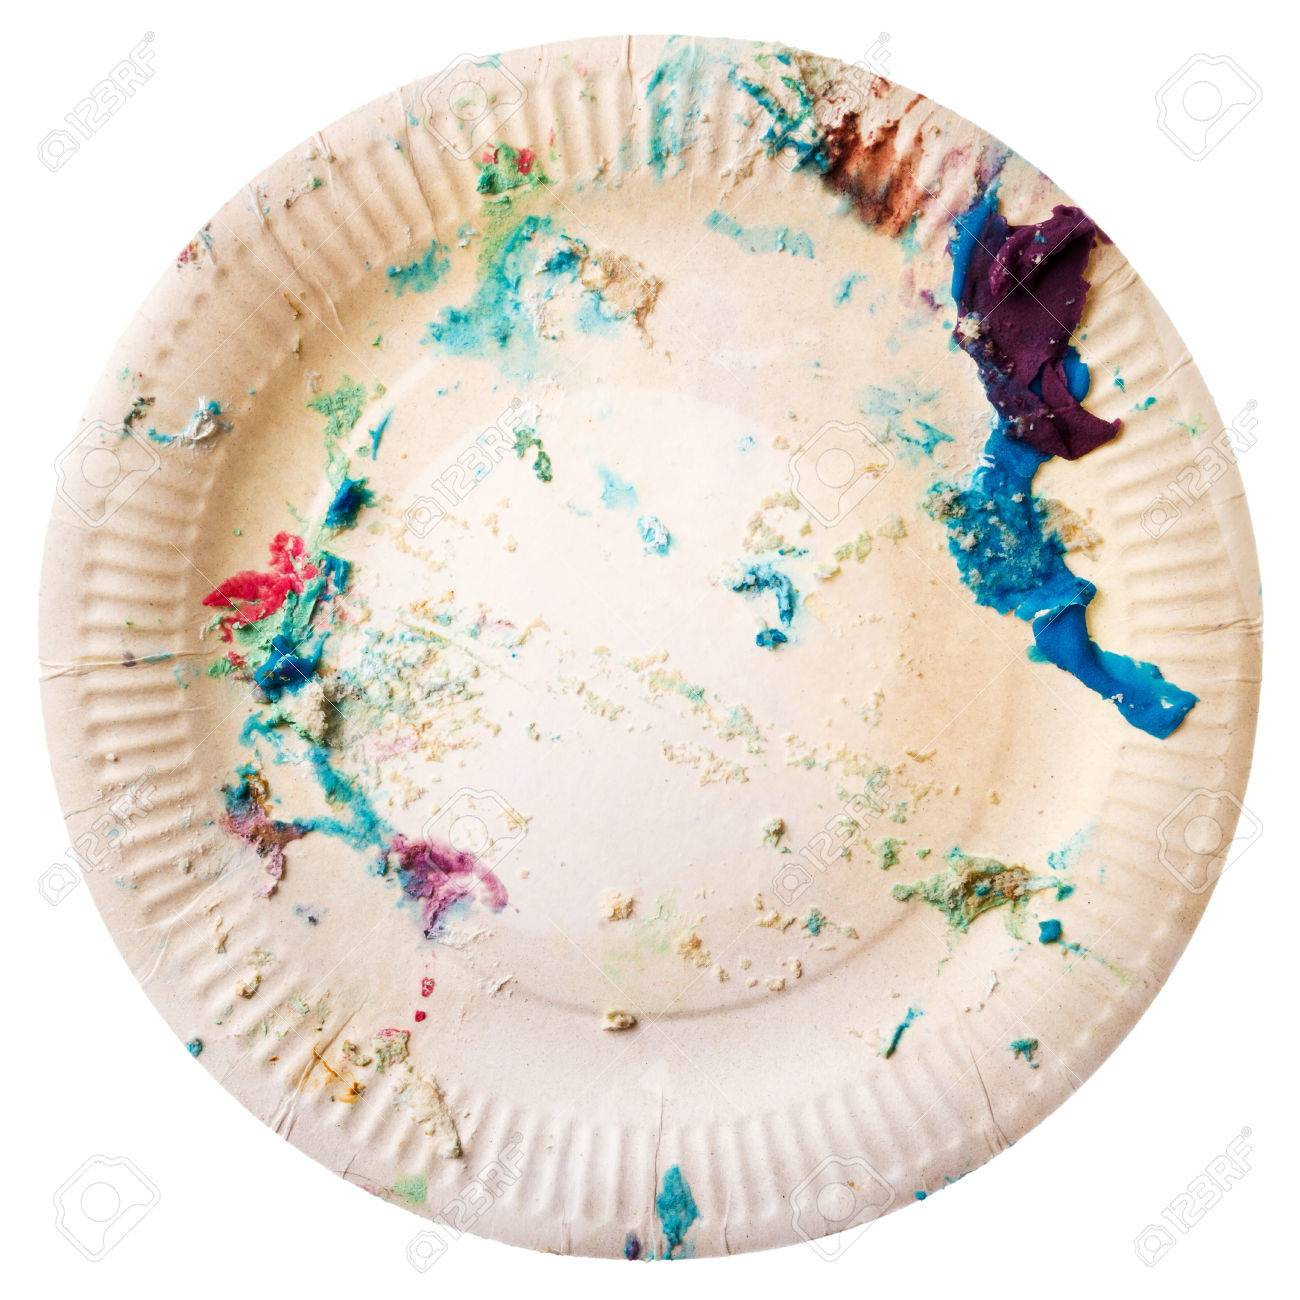 Disposable paper plate with cake crumbs isolated on white background. End of birthday party concept  sc 1 st  123RF.com & Disposable Paper Plate With Cake Crumbs Isolated On White Background ...